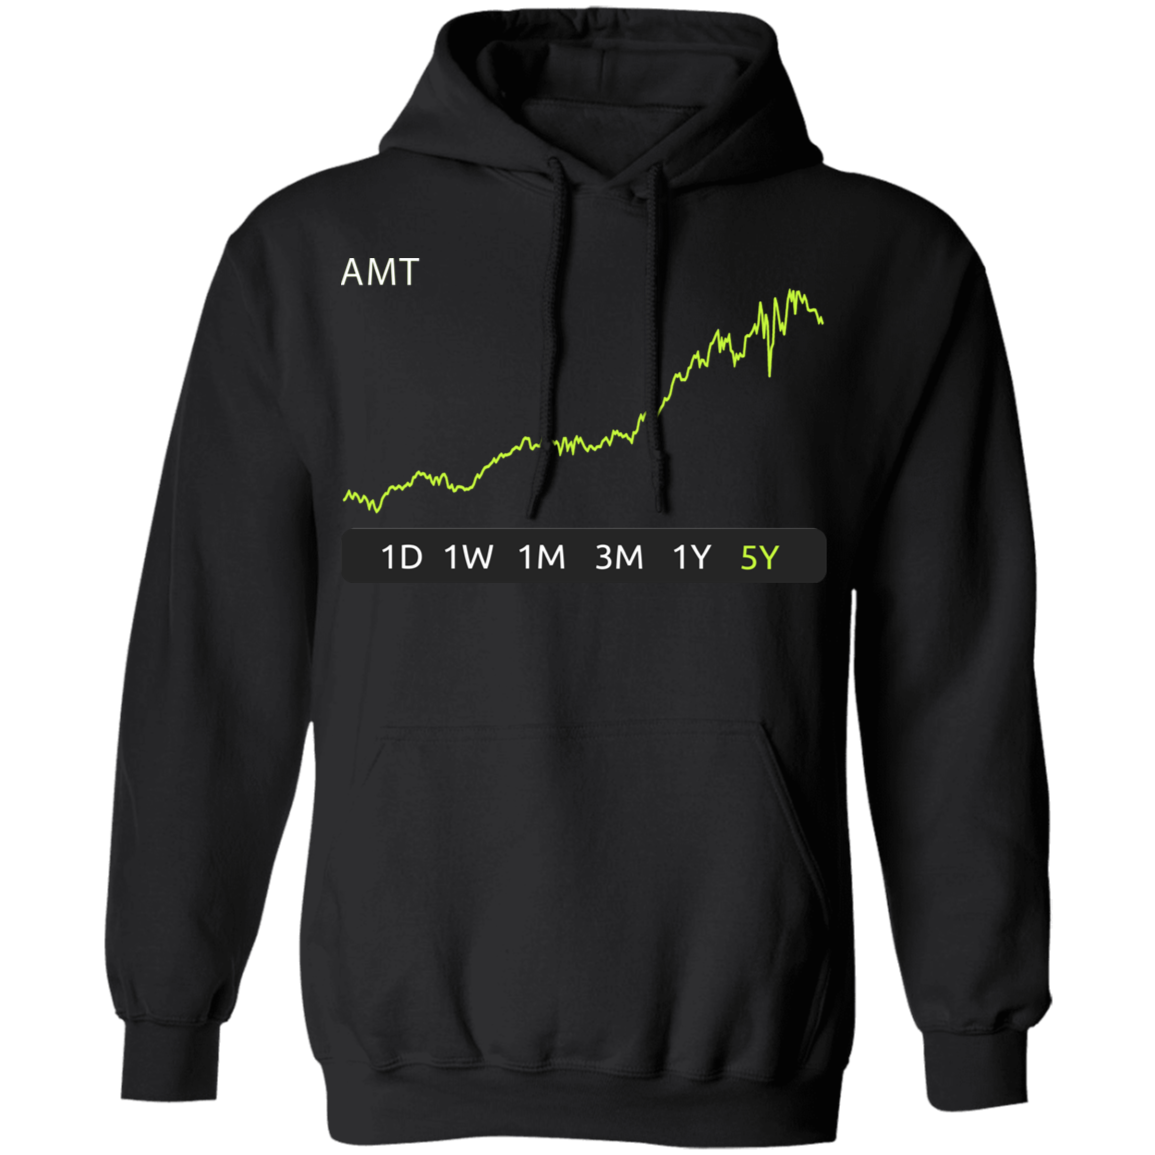 AMT Stock 1y  Pullover Hoodie